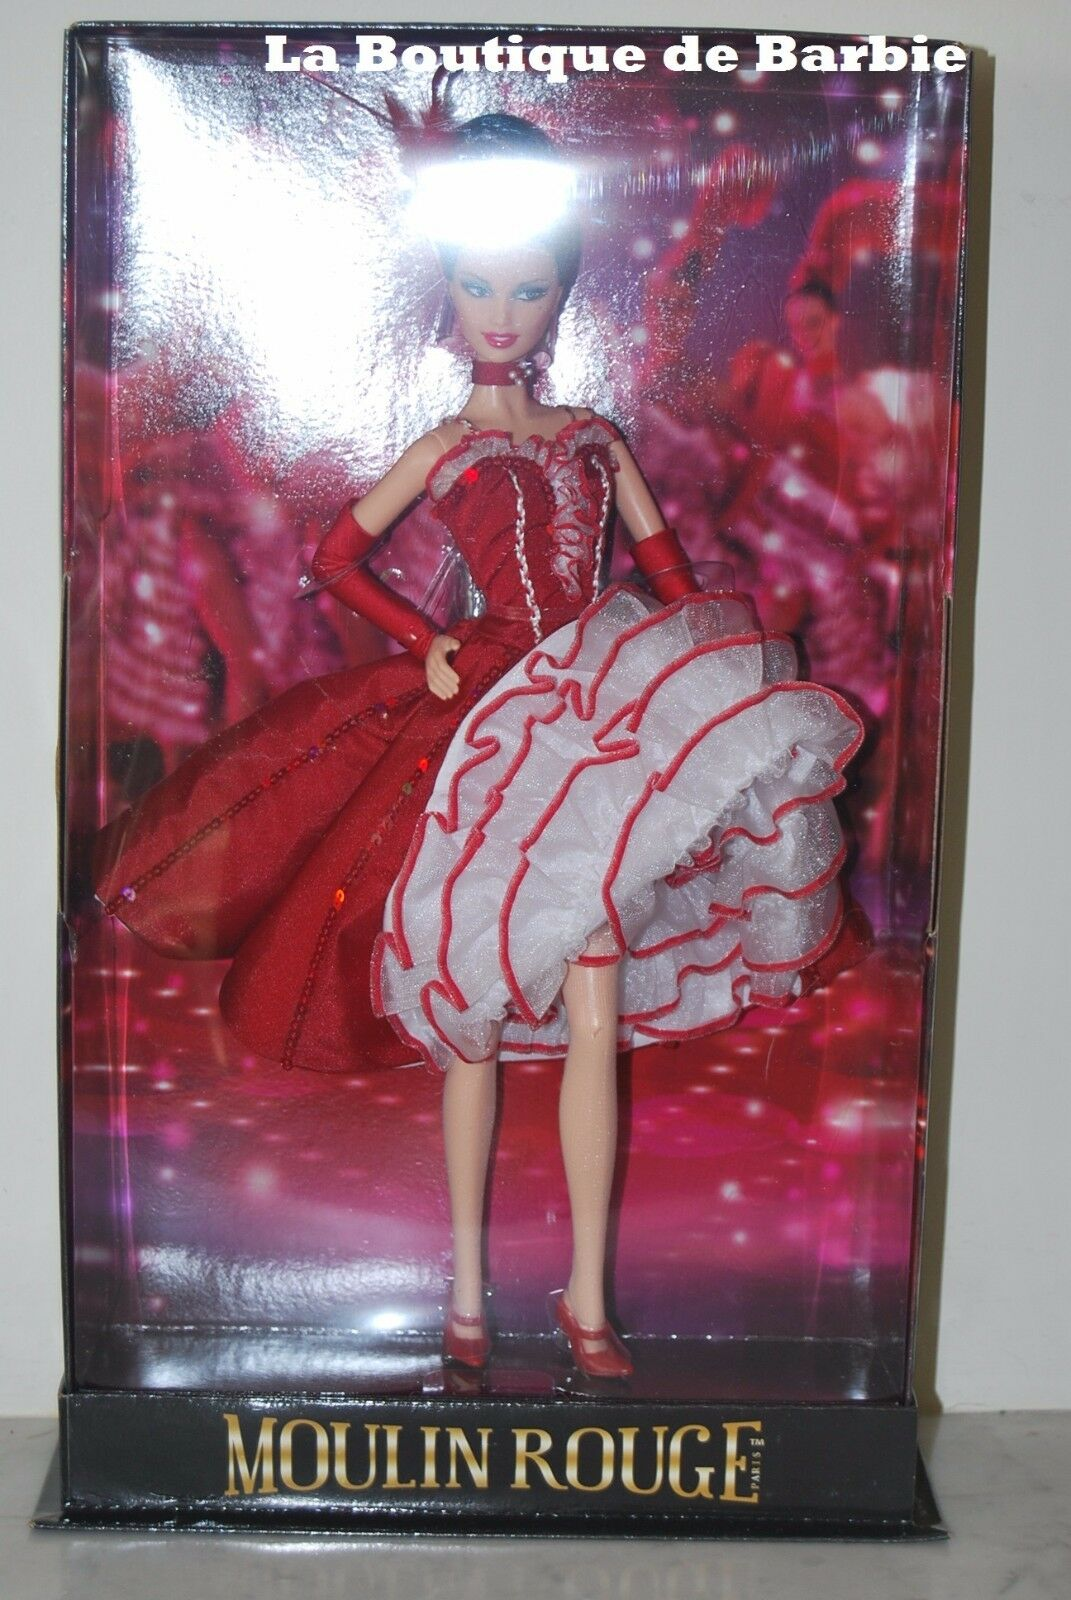 MOULIN rojo BARBIE DOLL, MORE FANTASY DOLLS COLLECTION, T7910, 2011, NRFB